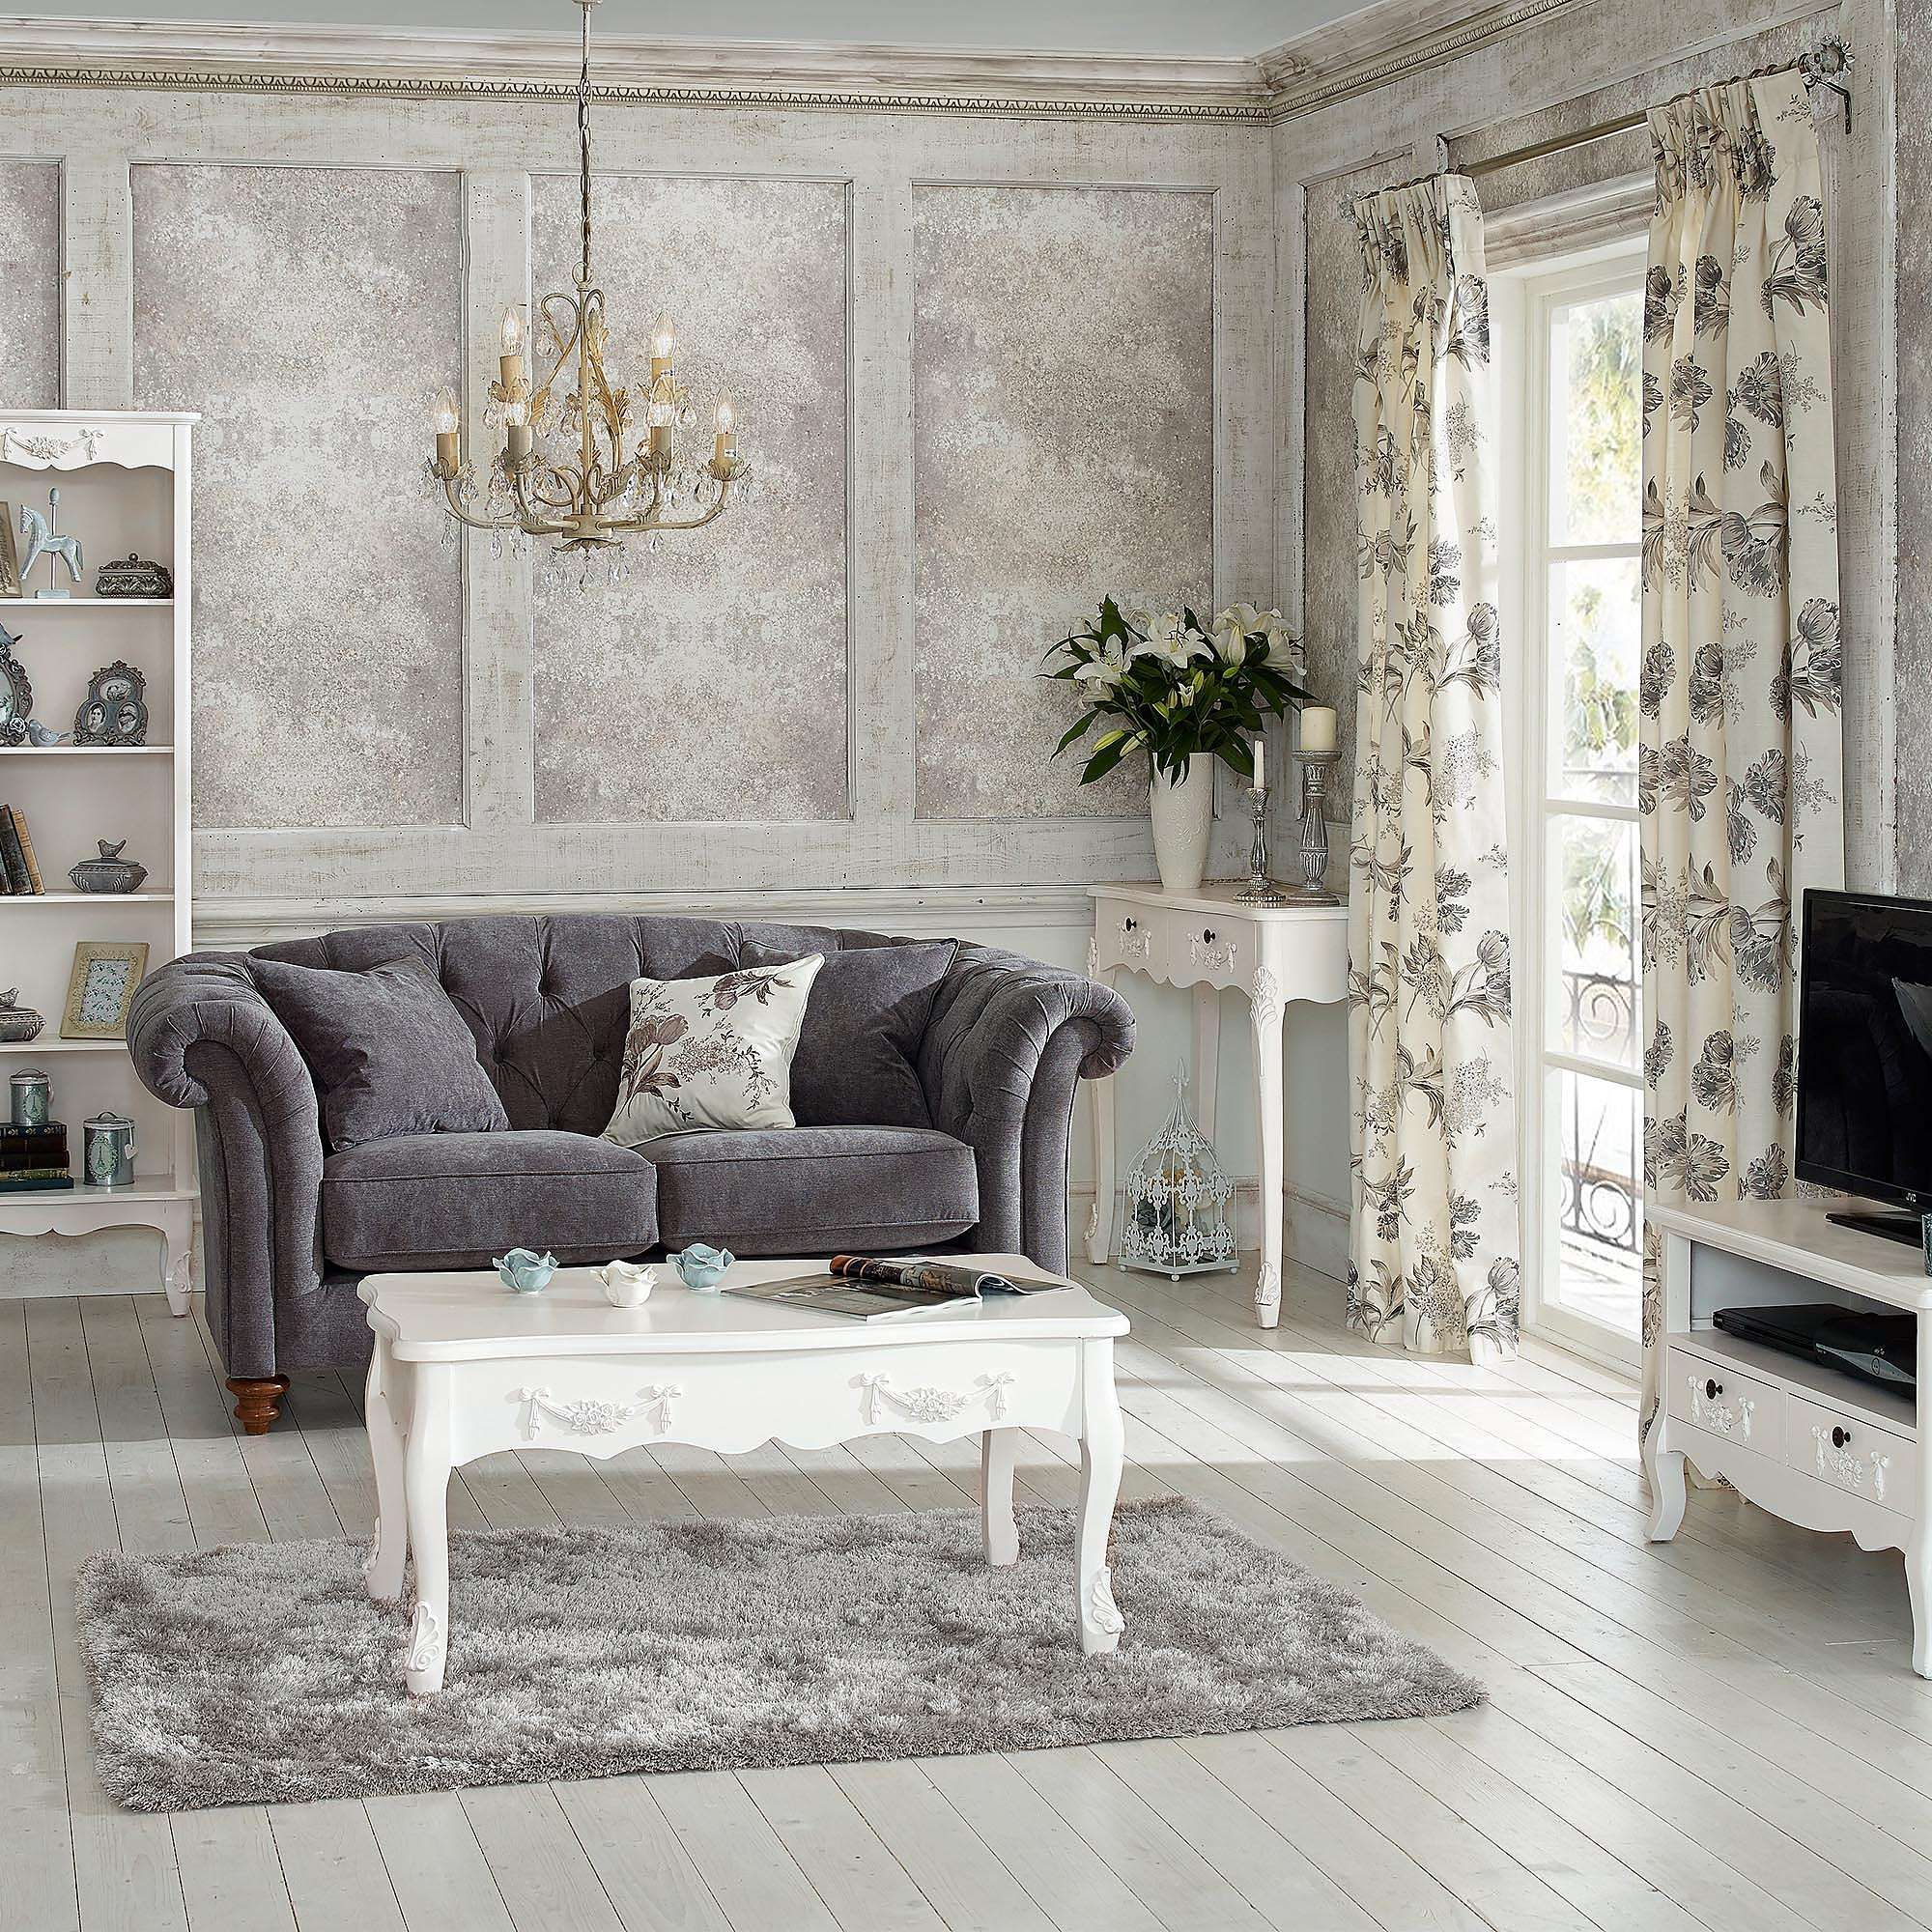 Toulouse White Coffee Table Furniture Living Furniture White Painted Furniture Living room ideas dunelm